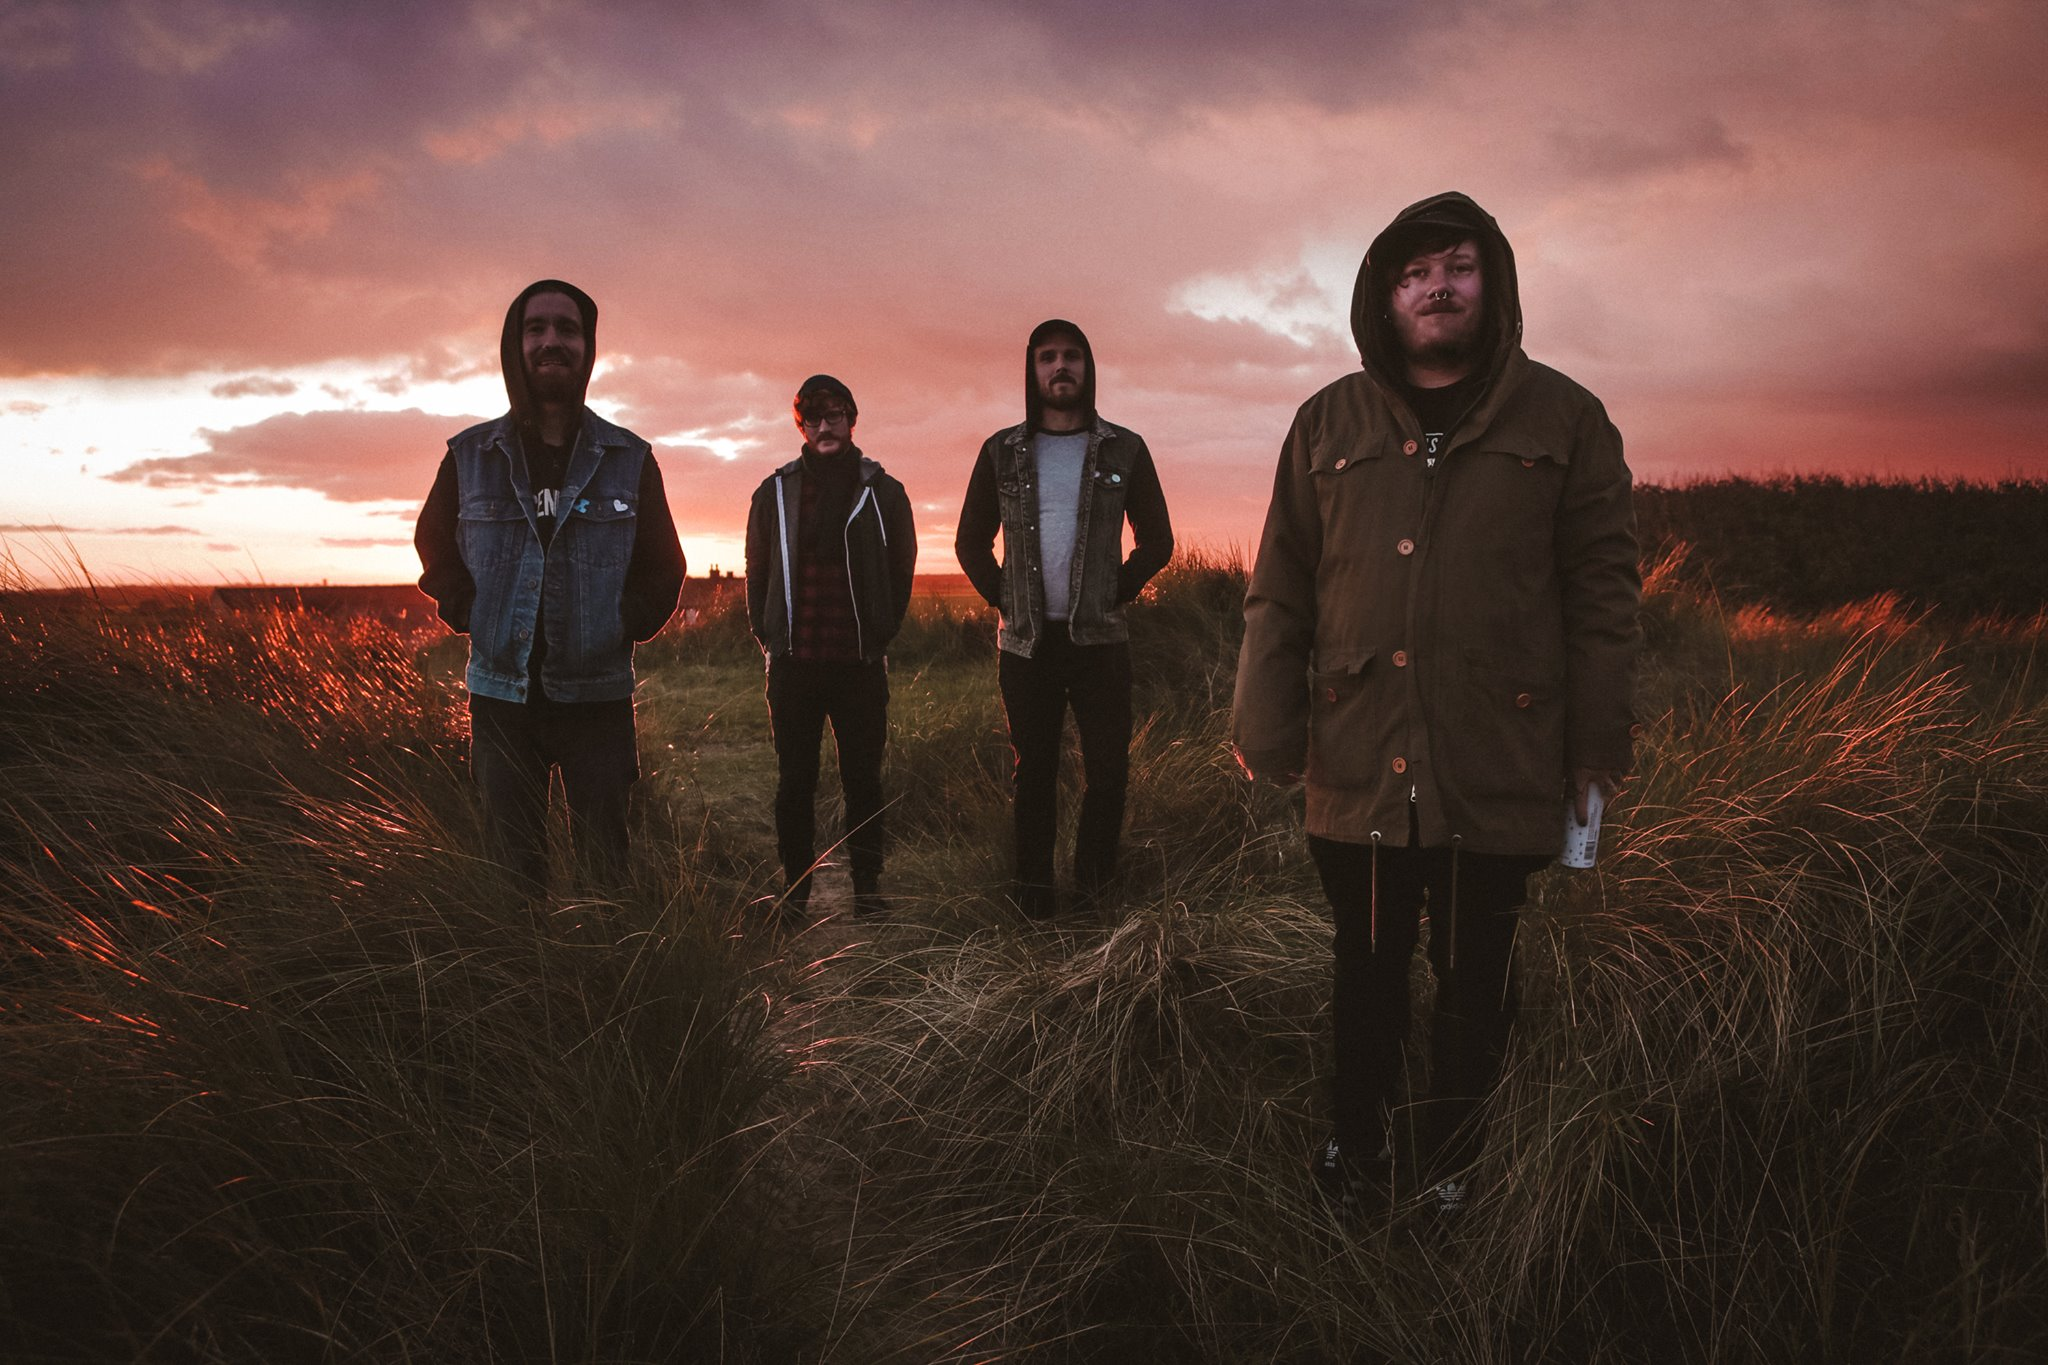 Ducking Punches – 'We just try and spread the message that it's okay to suffer… you just have to talk about it.'